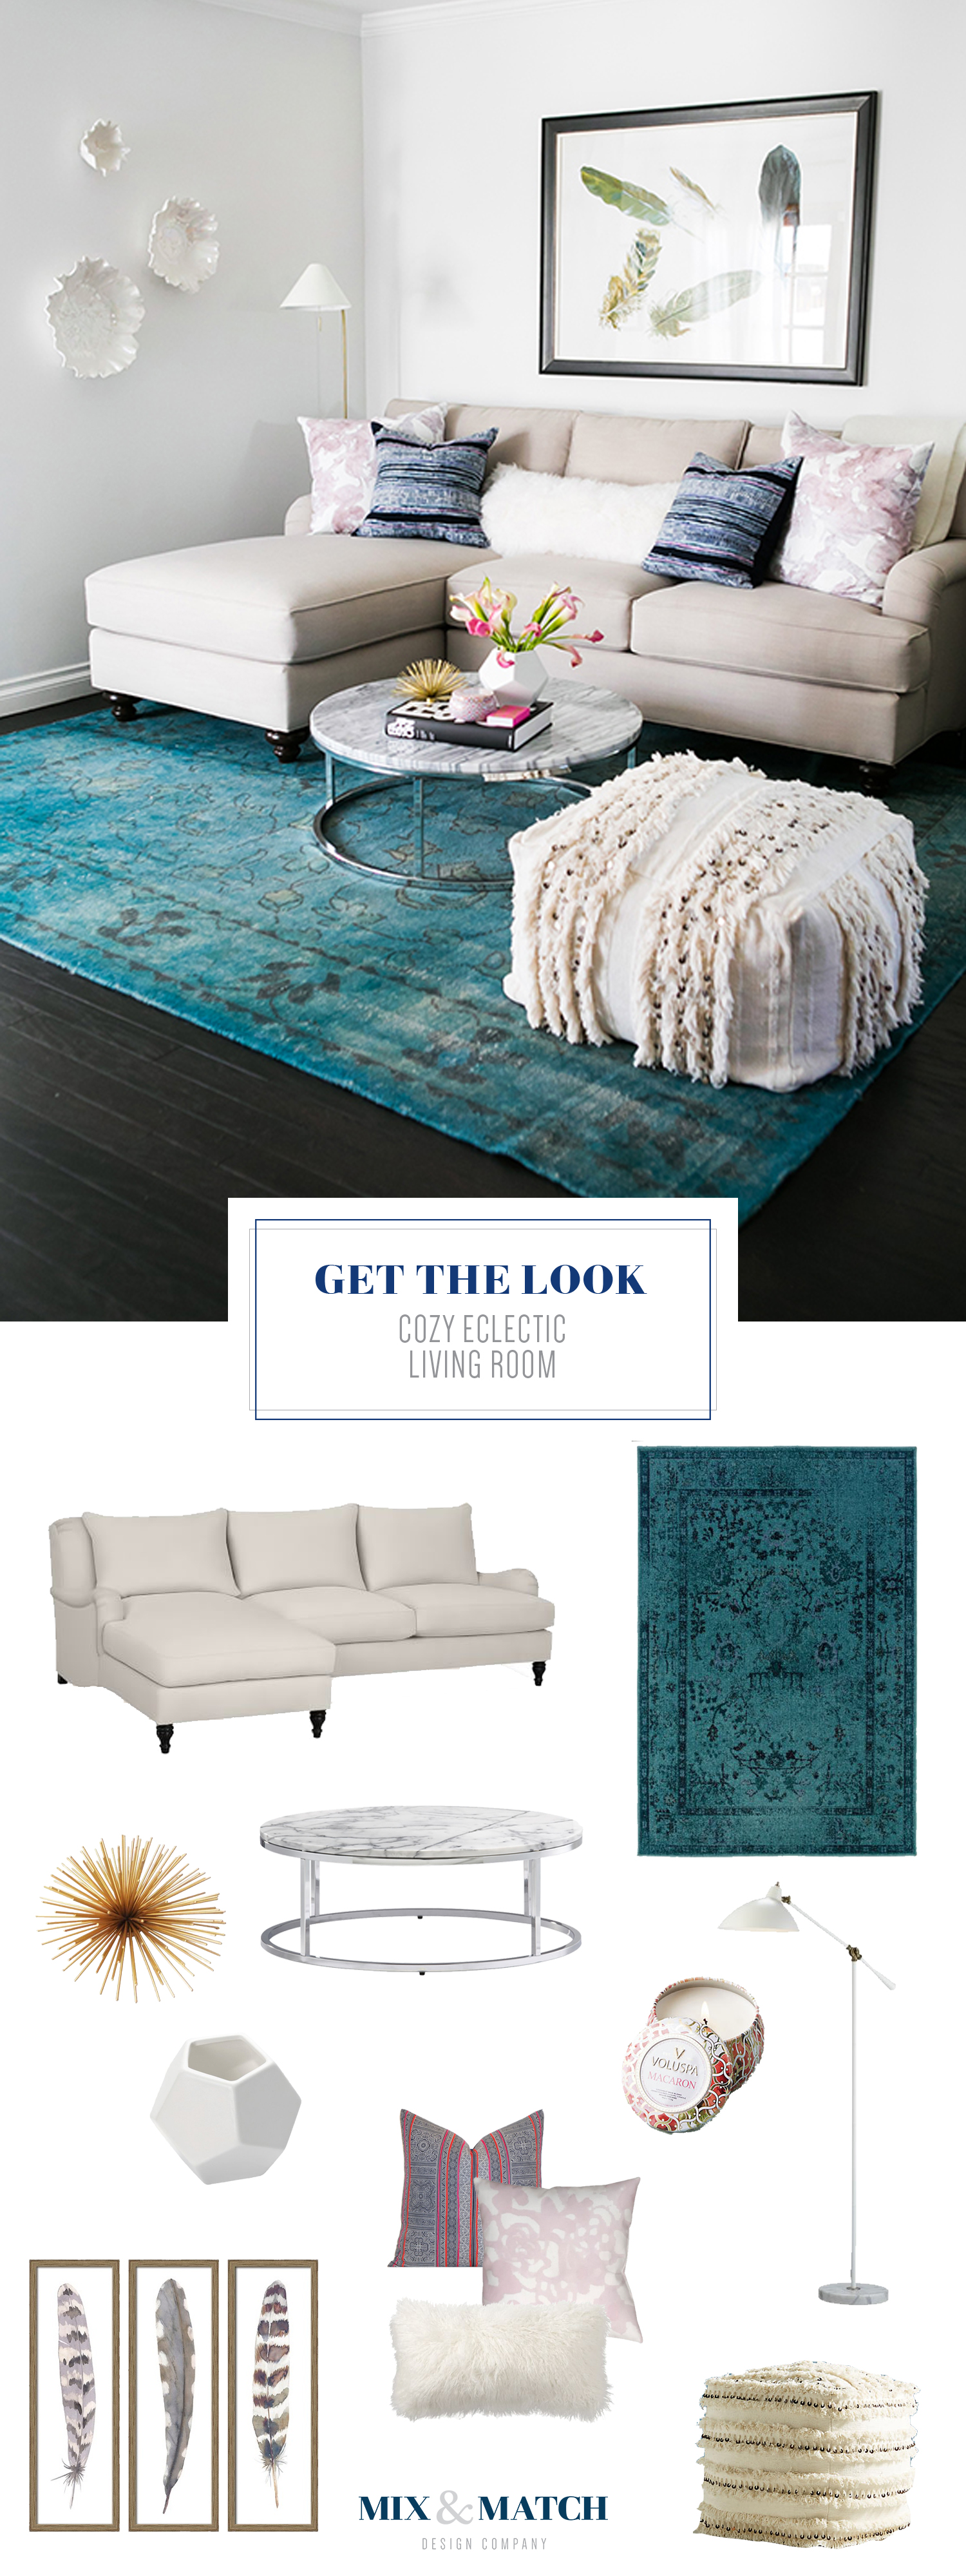 Get the look of this cozy eclectic living room on the blog! // overdyed rug, english roll arm sofa, neutral living room, boho traditional living room